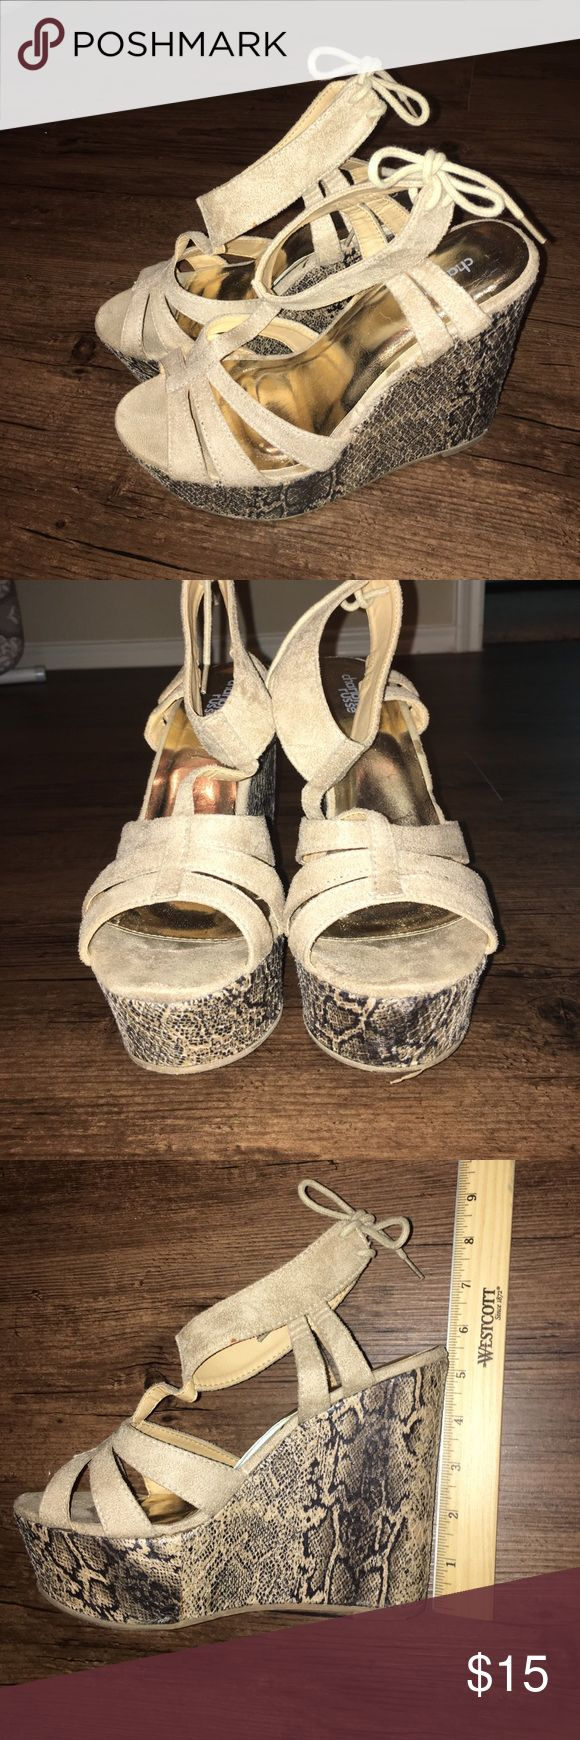 Charlotte Russe Faix Suede Tan Snake Skin Wedges Tan Snake skin Wedges. Faux Suede. Super comfy. Only wear & tear is located on the soles. Other than that they're in great condition! Charlotte Russe Shoes Wedges